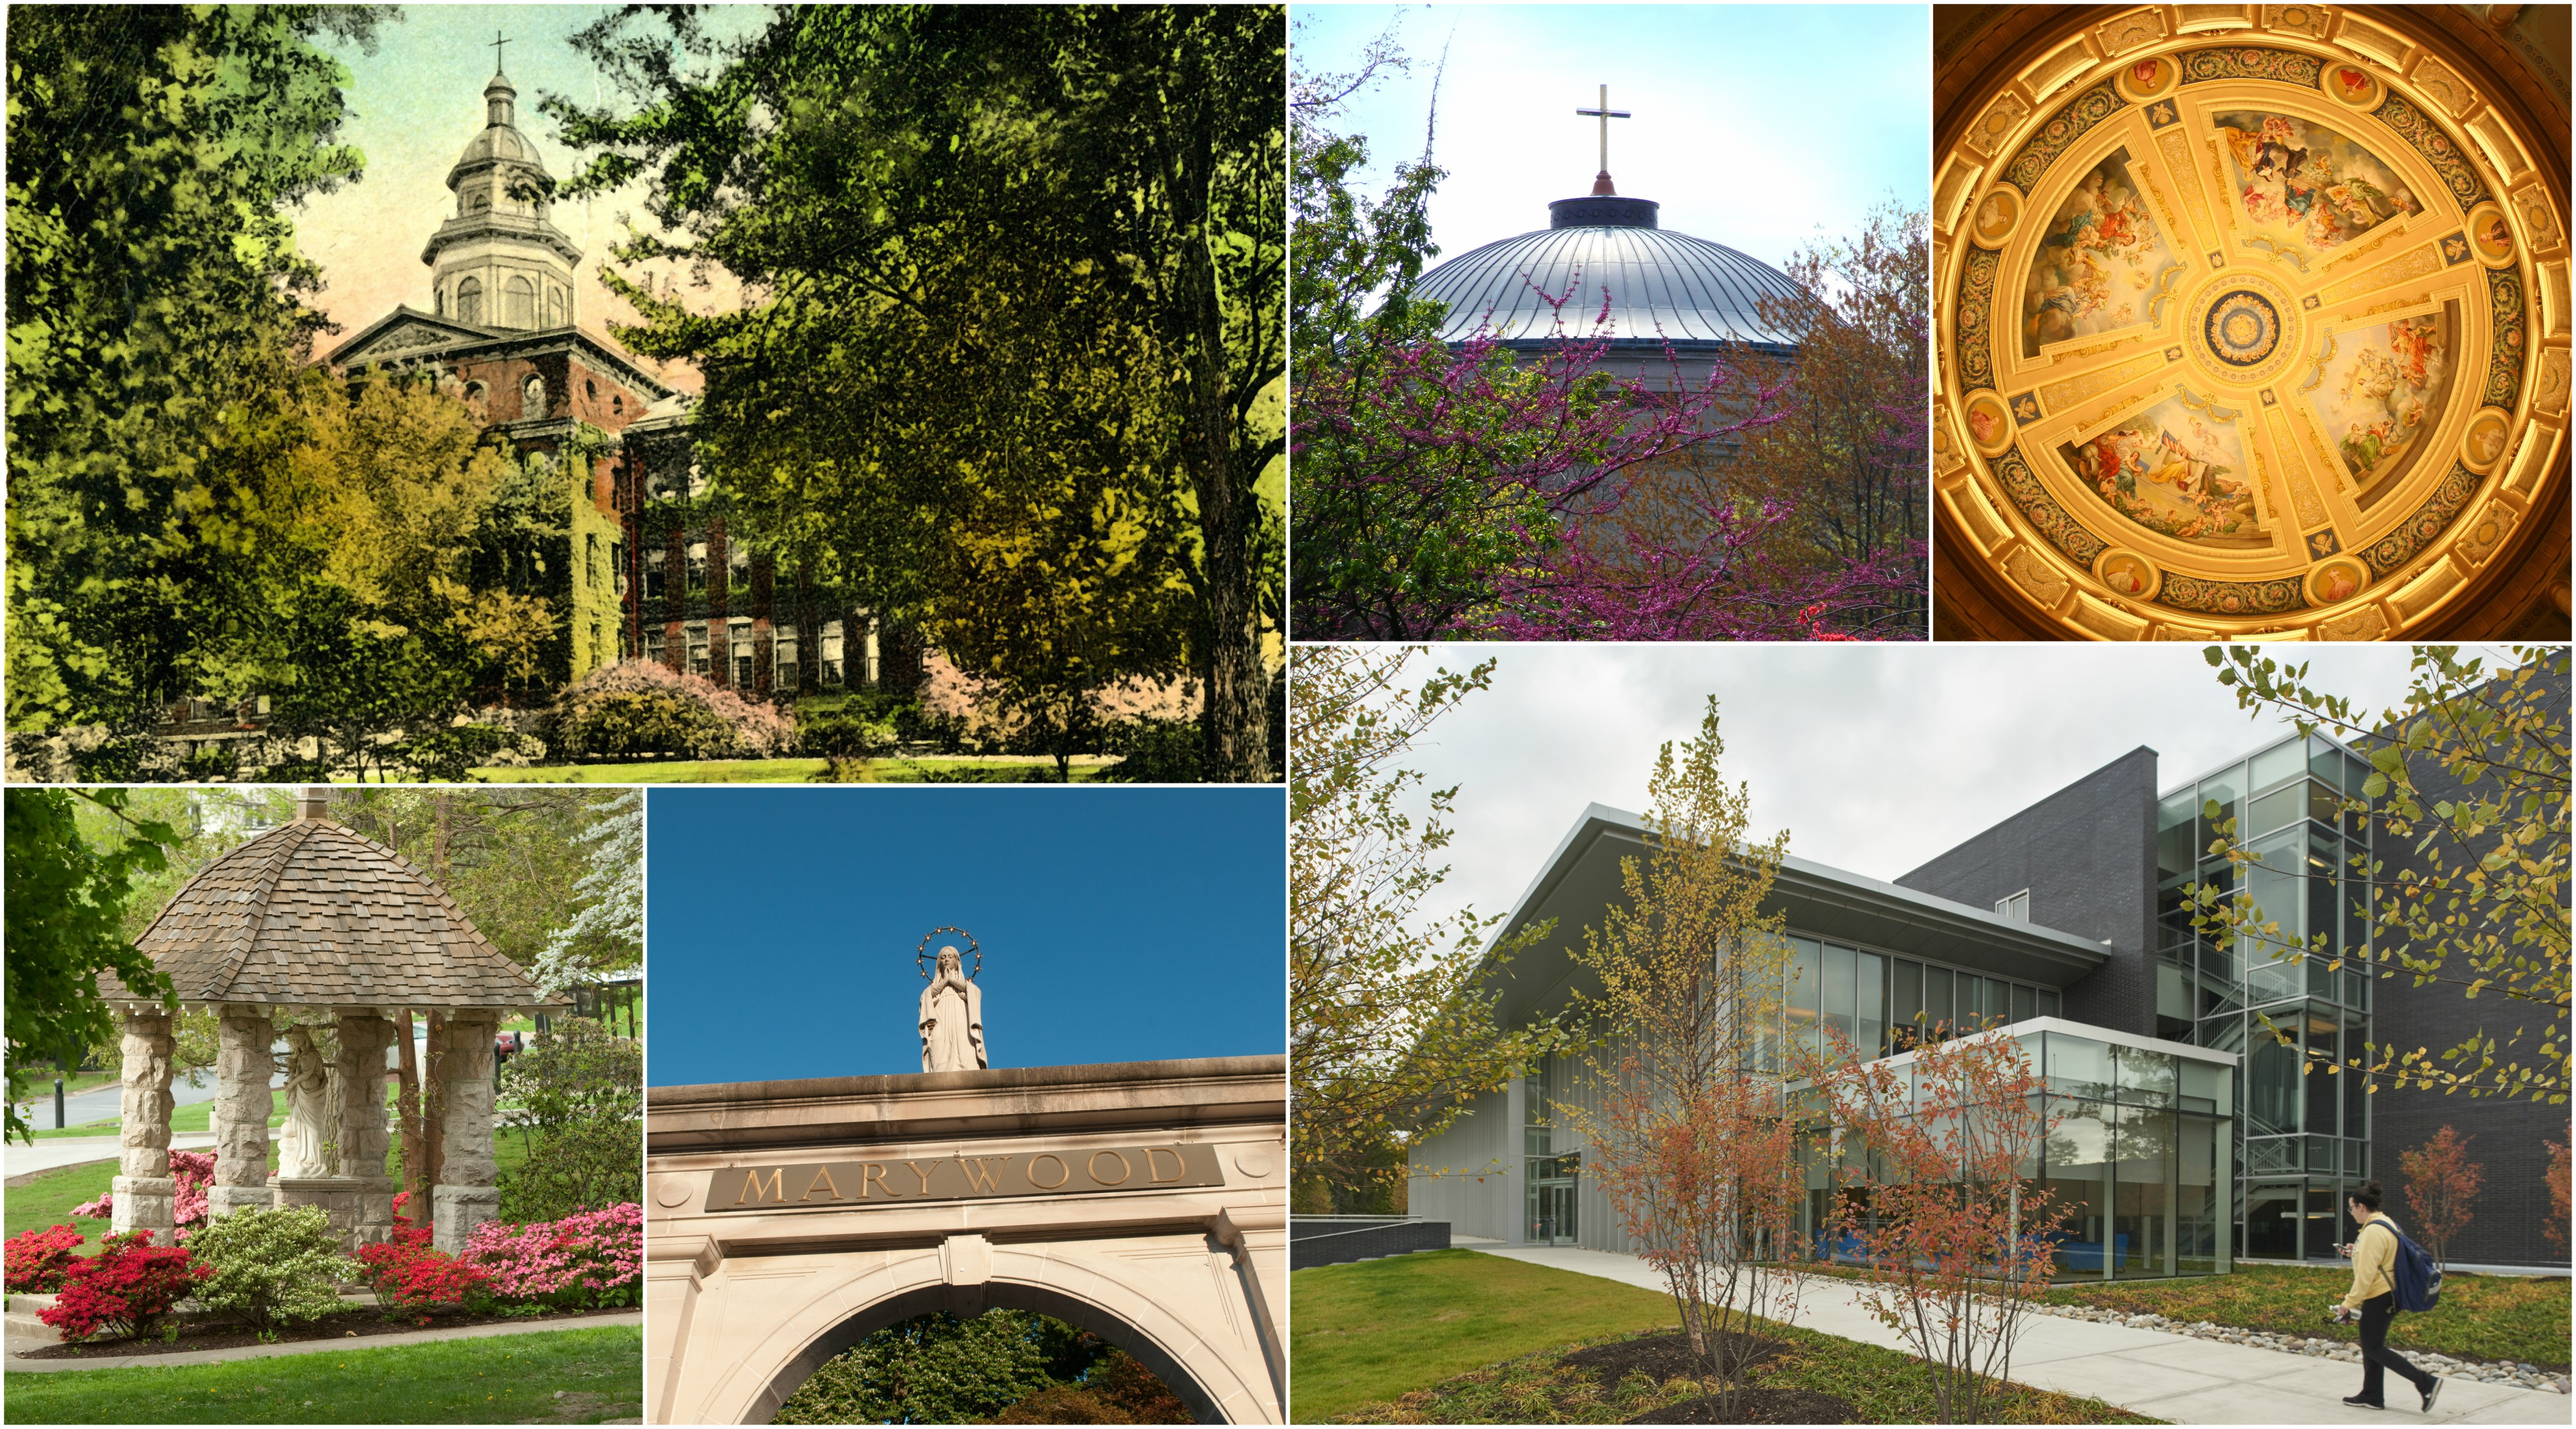 Marywood image collage